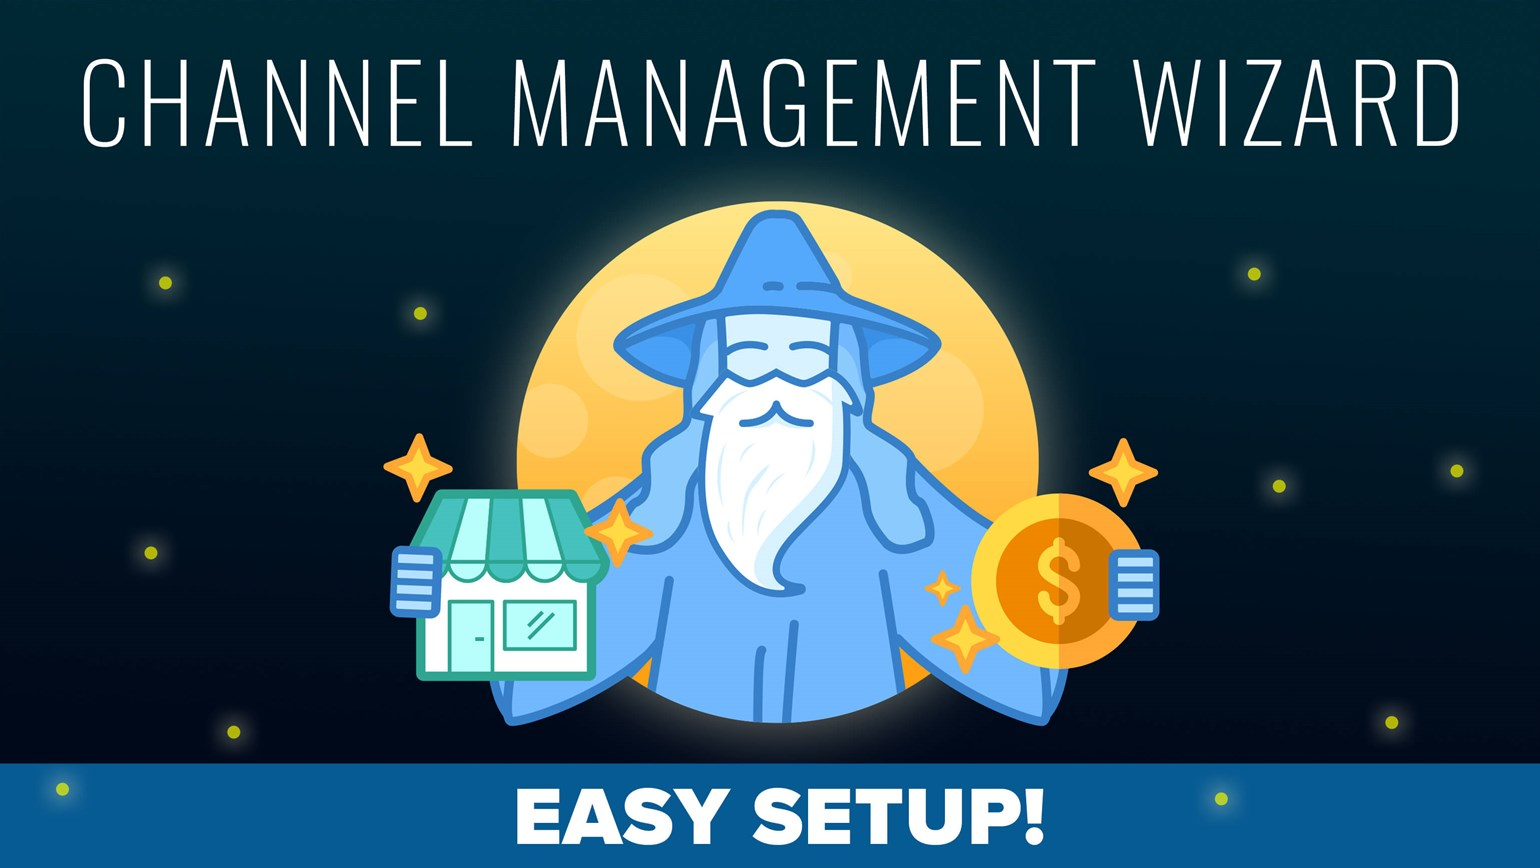 New Channel Management Wizard Makes Setting Up In-Store Prices Easy